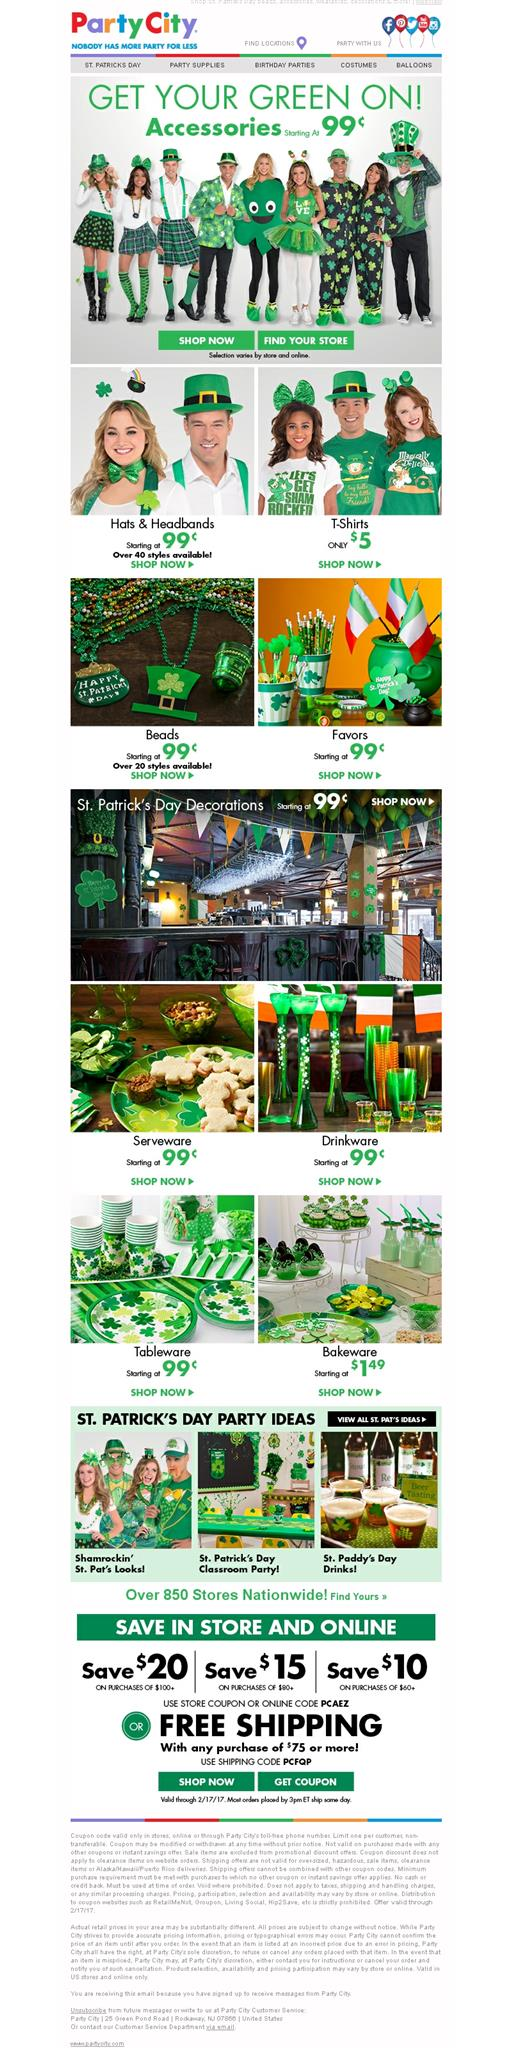 Get your Green On, an St. Patrick's Day email by Party City